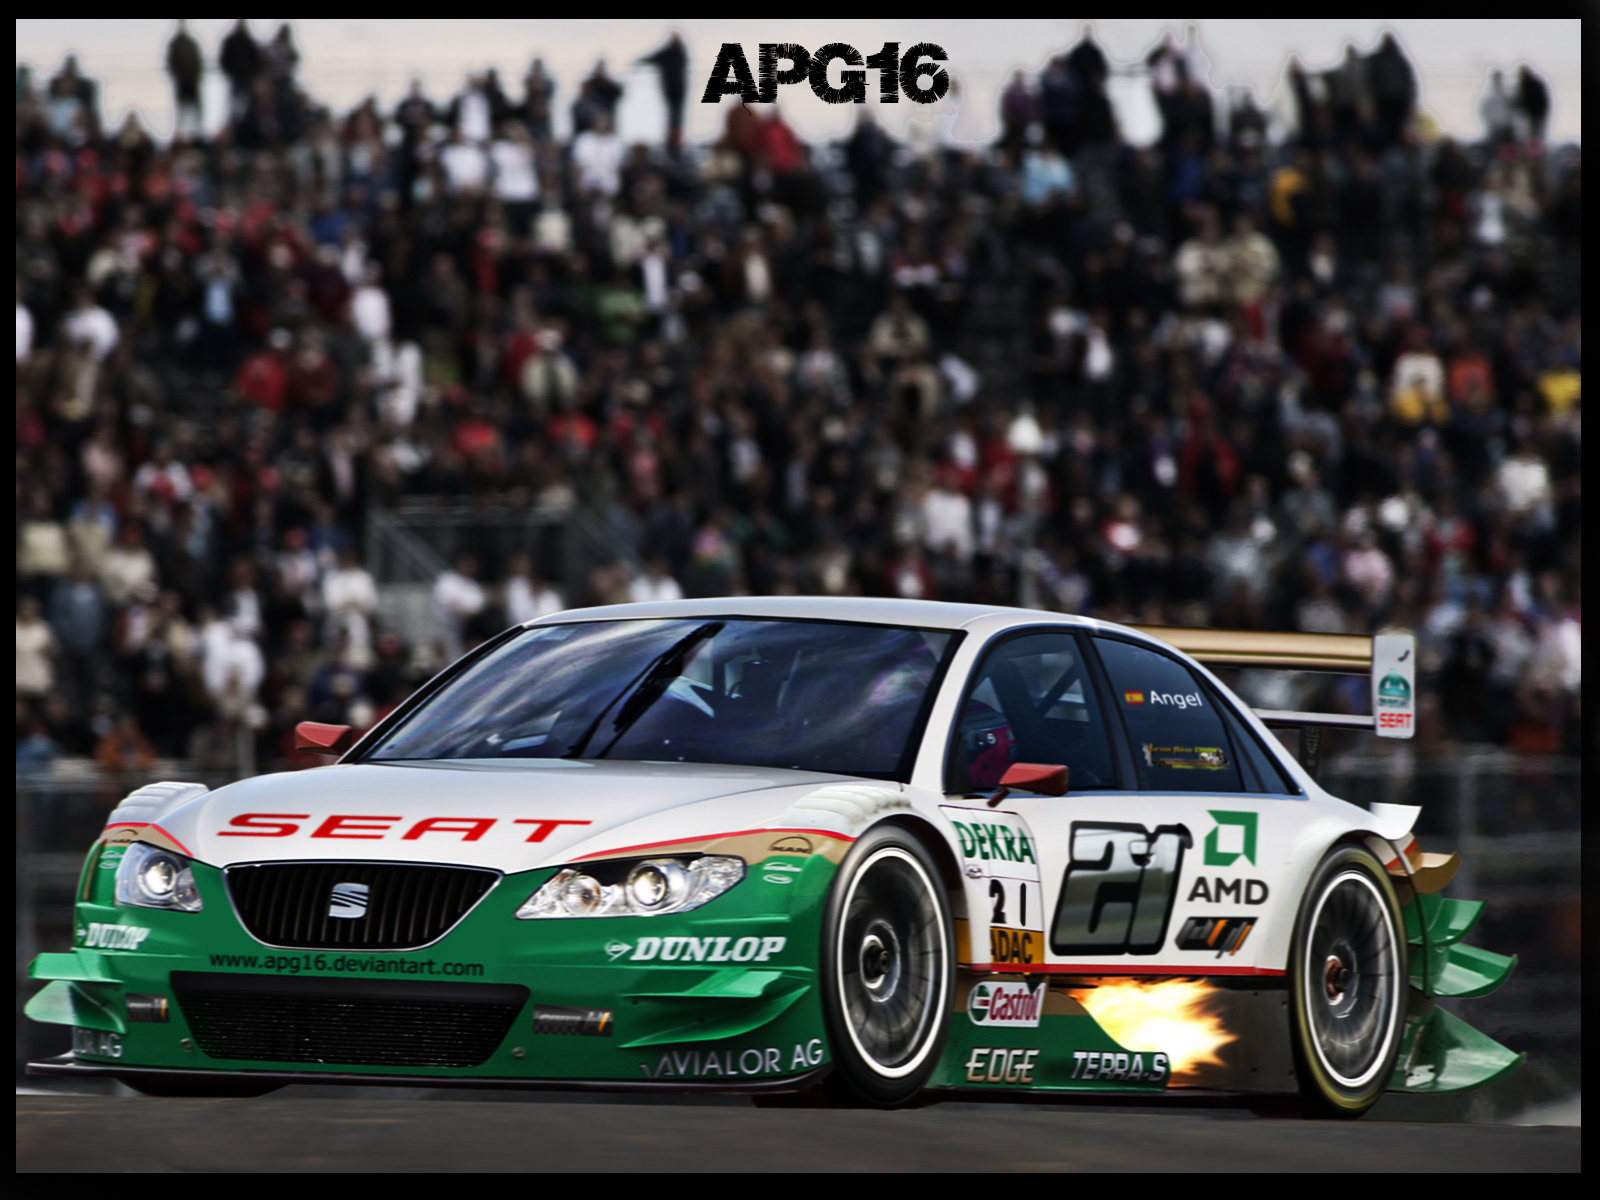 Seat_exeo_dtm_by_apg16